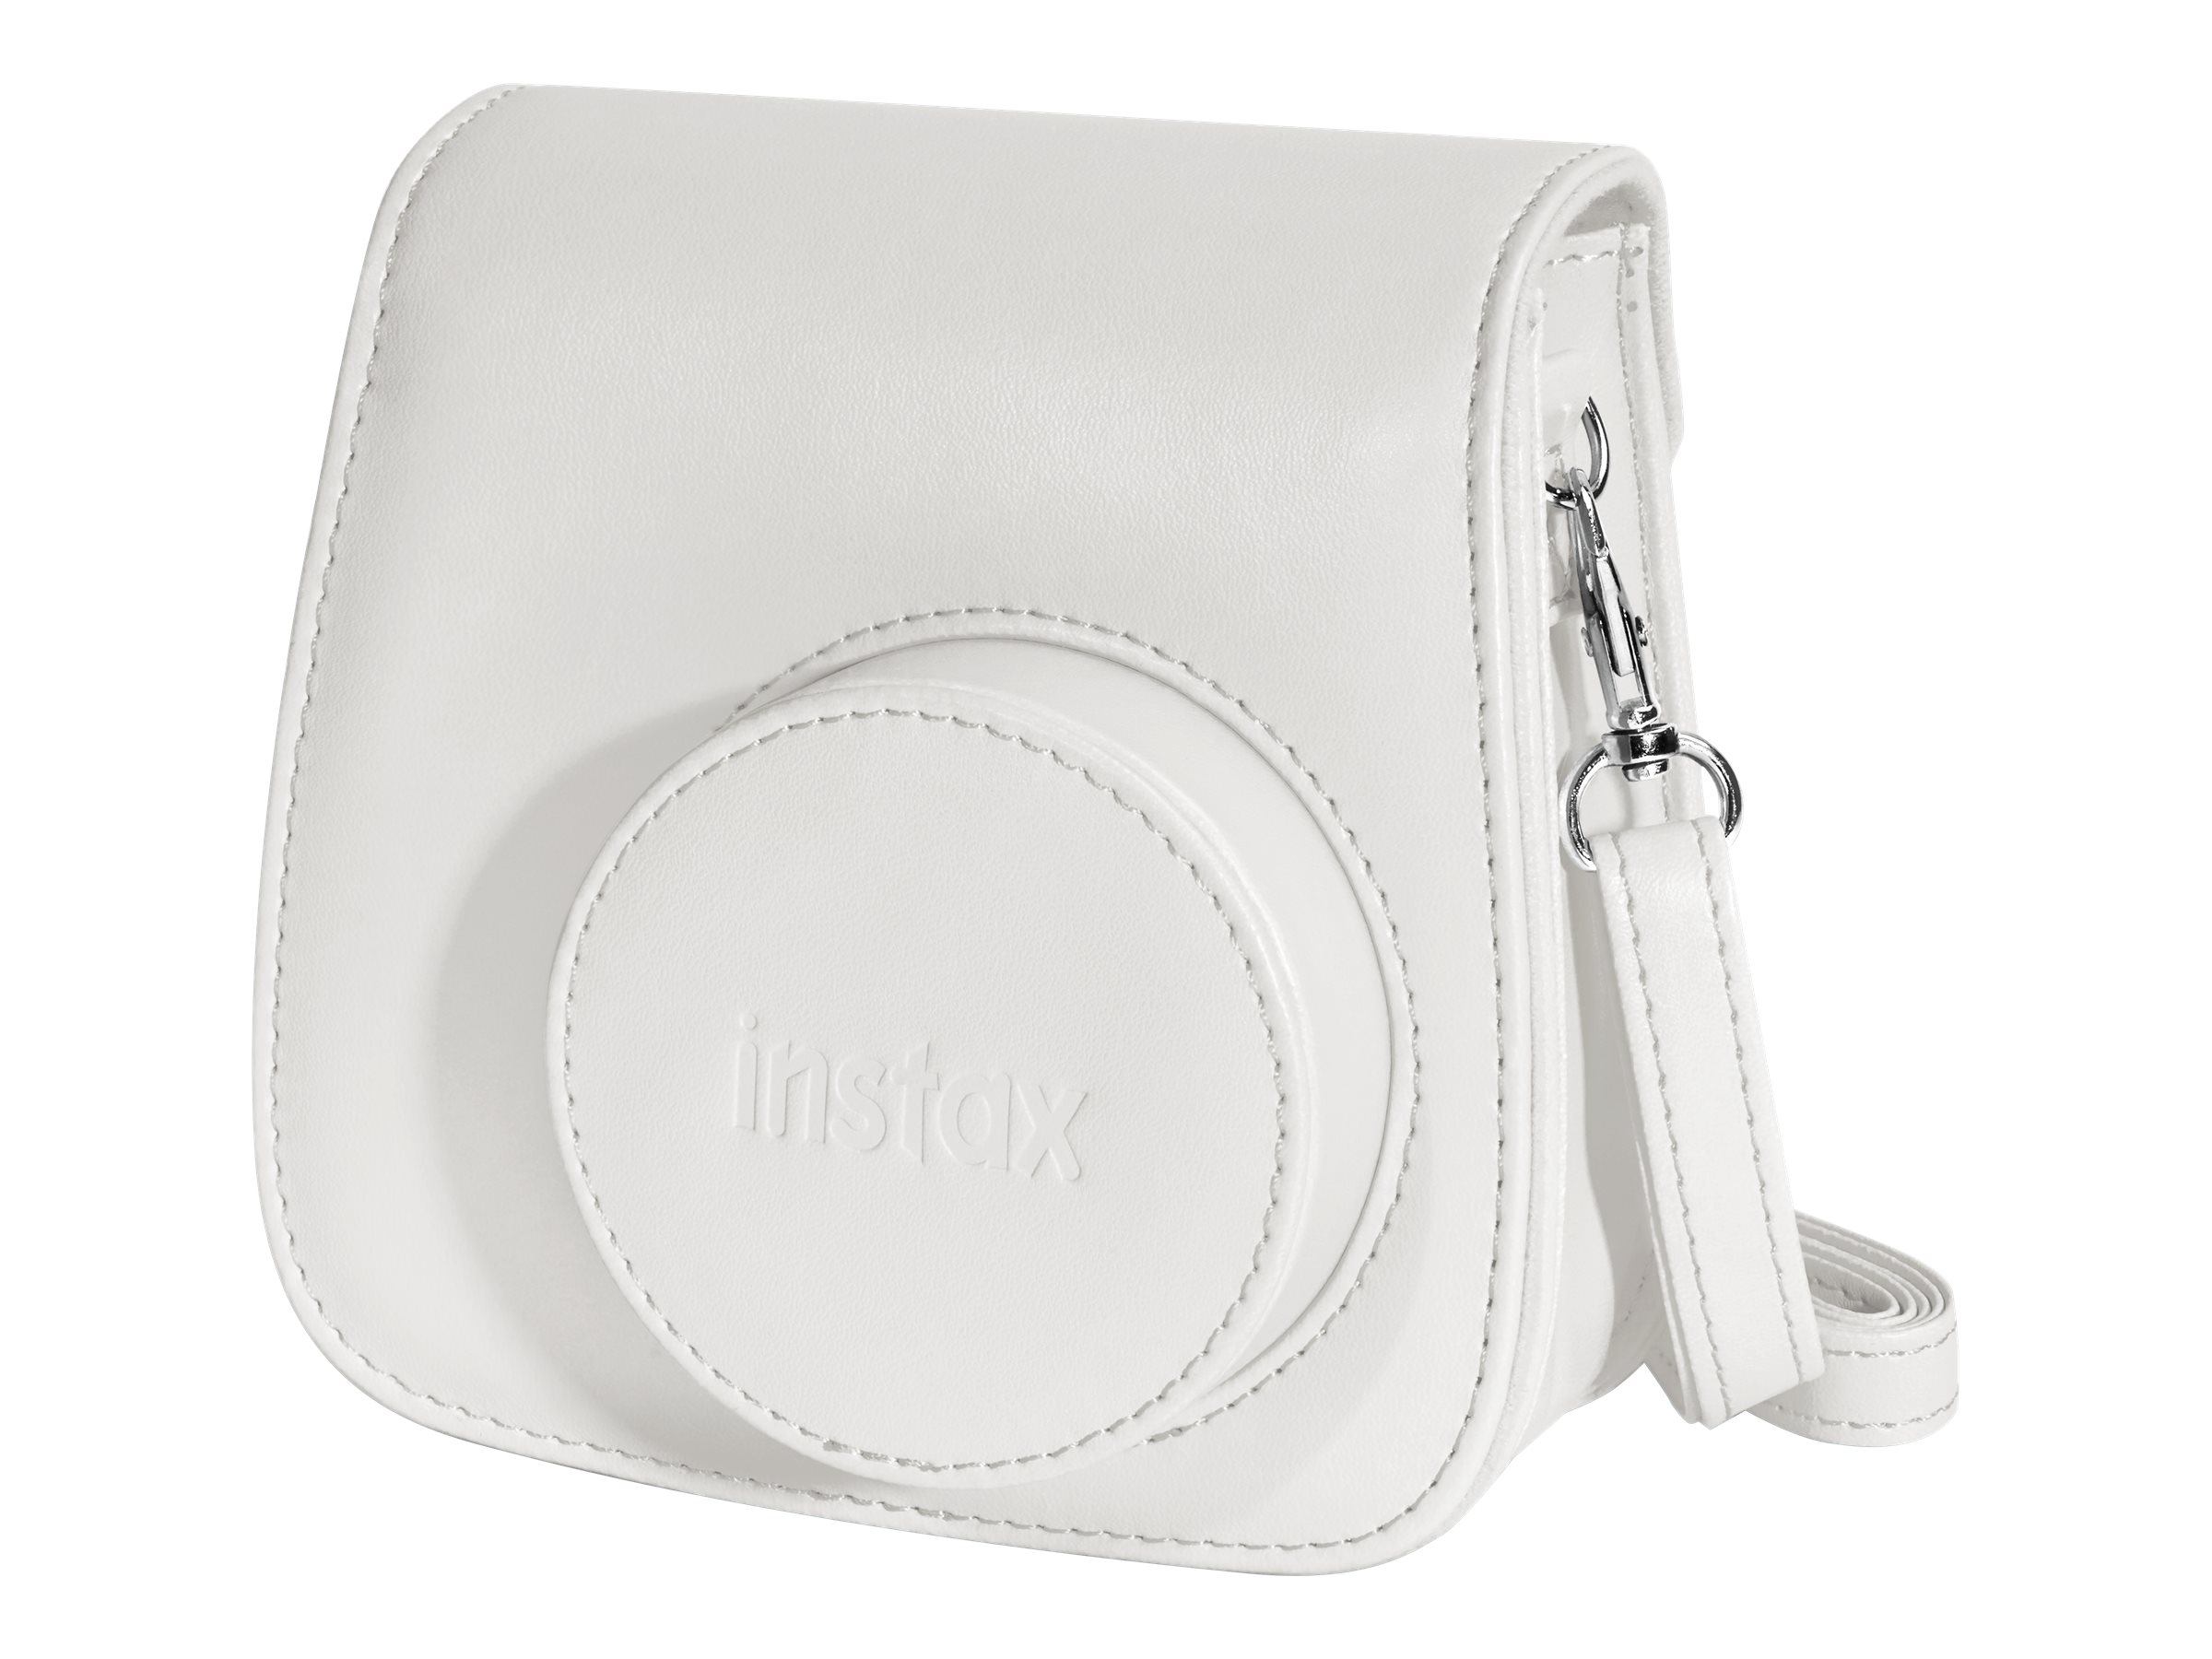 Fujifilm Instax Groovy Camera Case w  Shoulder Strap for Instax Mini 8 Instant Camera, White, 600015375, 21730205, Carrying Cases - Camera/Camcorder